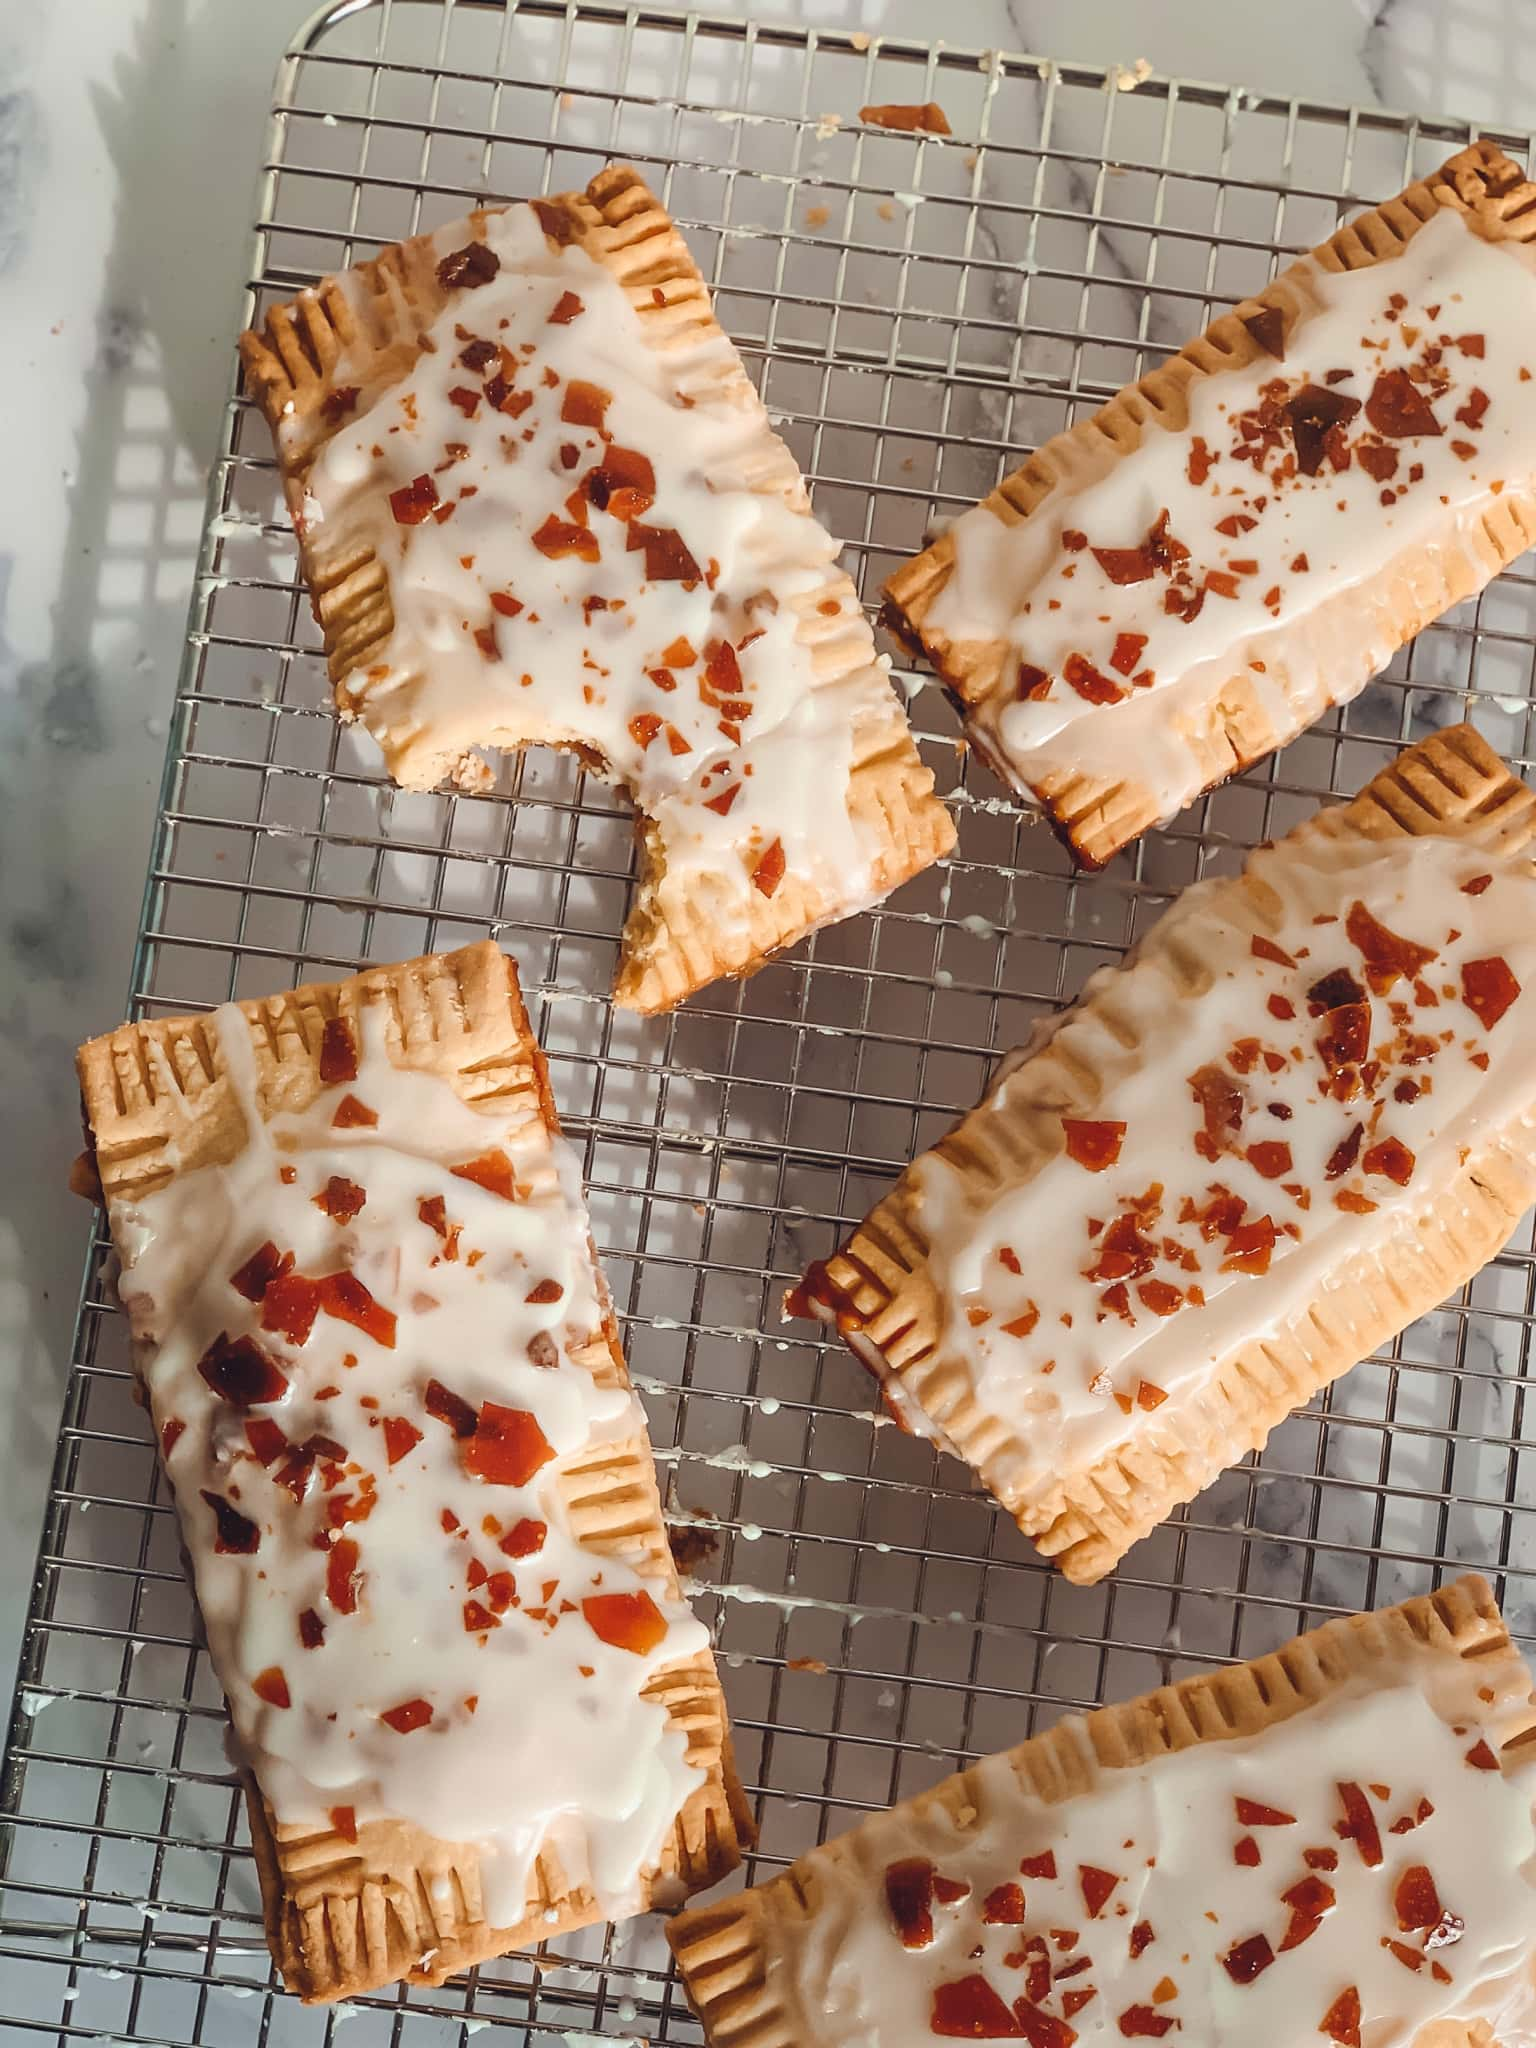 Chocolate Maple Pop Tarts with Cocoa Bean Infused Maple Syrup by Runamok Maple